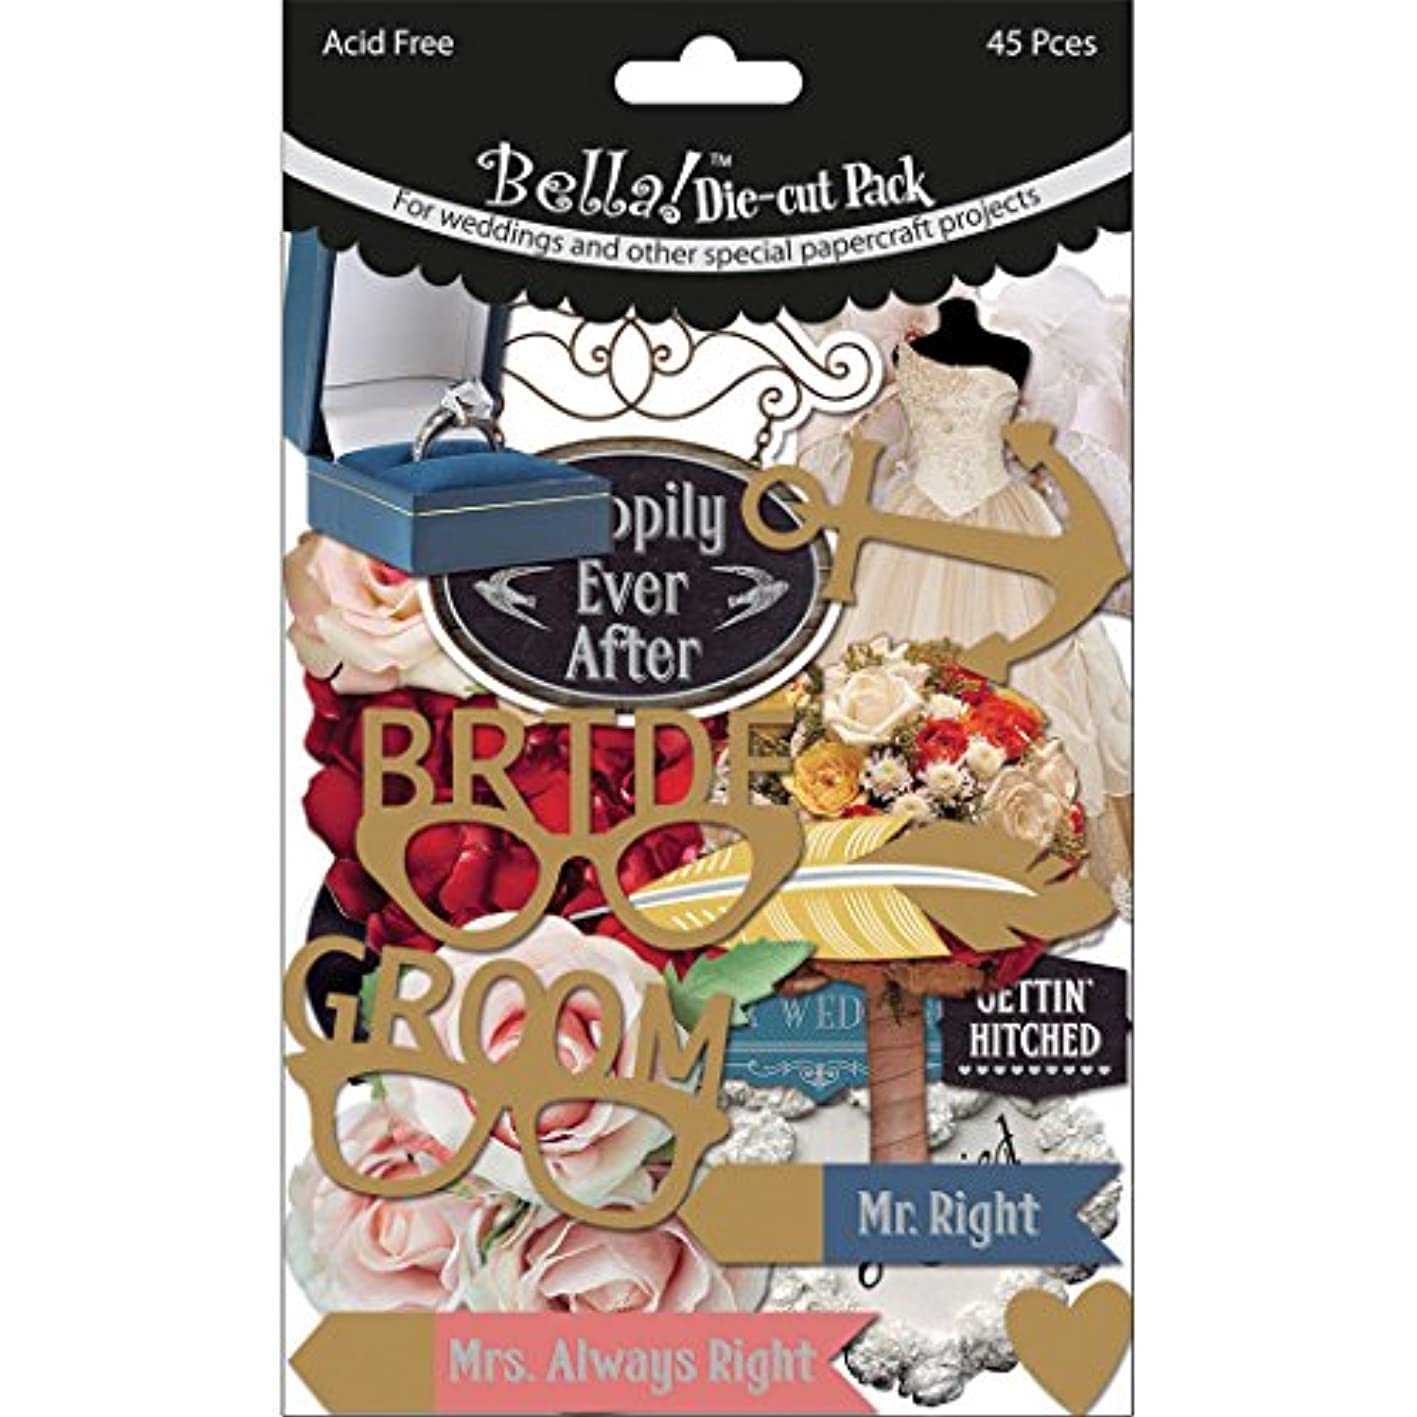 Ruby Rock-It Bella! Wedding Cardstock Die-Cuts (45 Pack) hcjxtrigaxt098